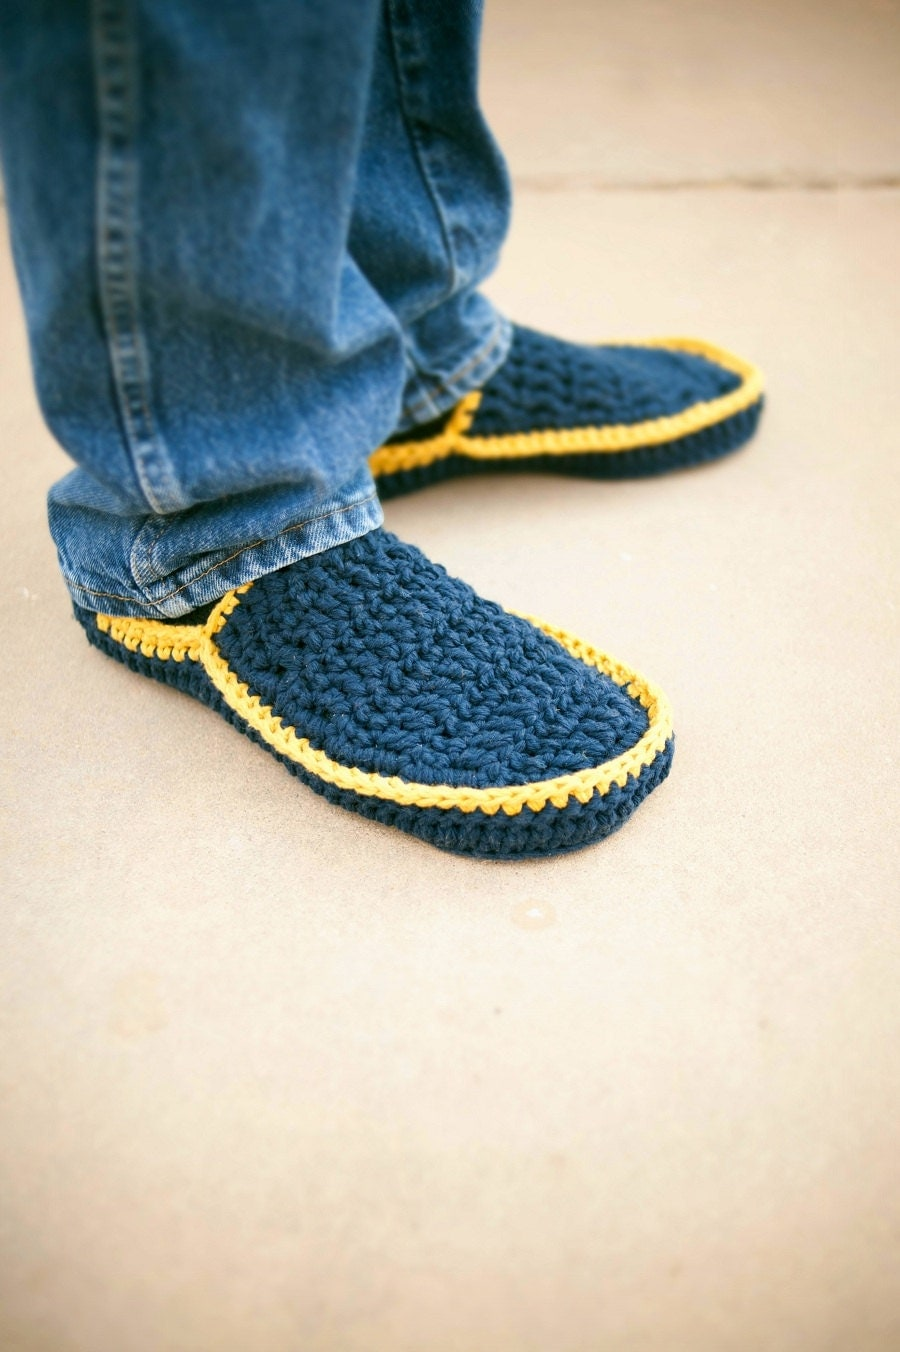 Crochet Patterns For Men Slippers Men 39 s House Slippers Crochet